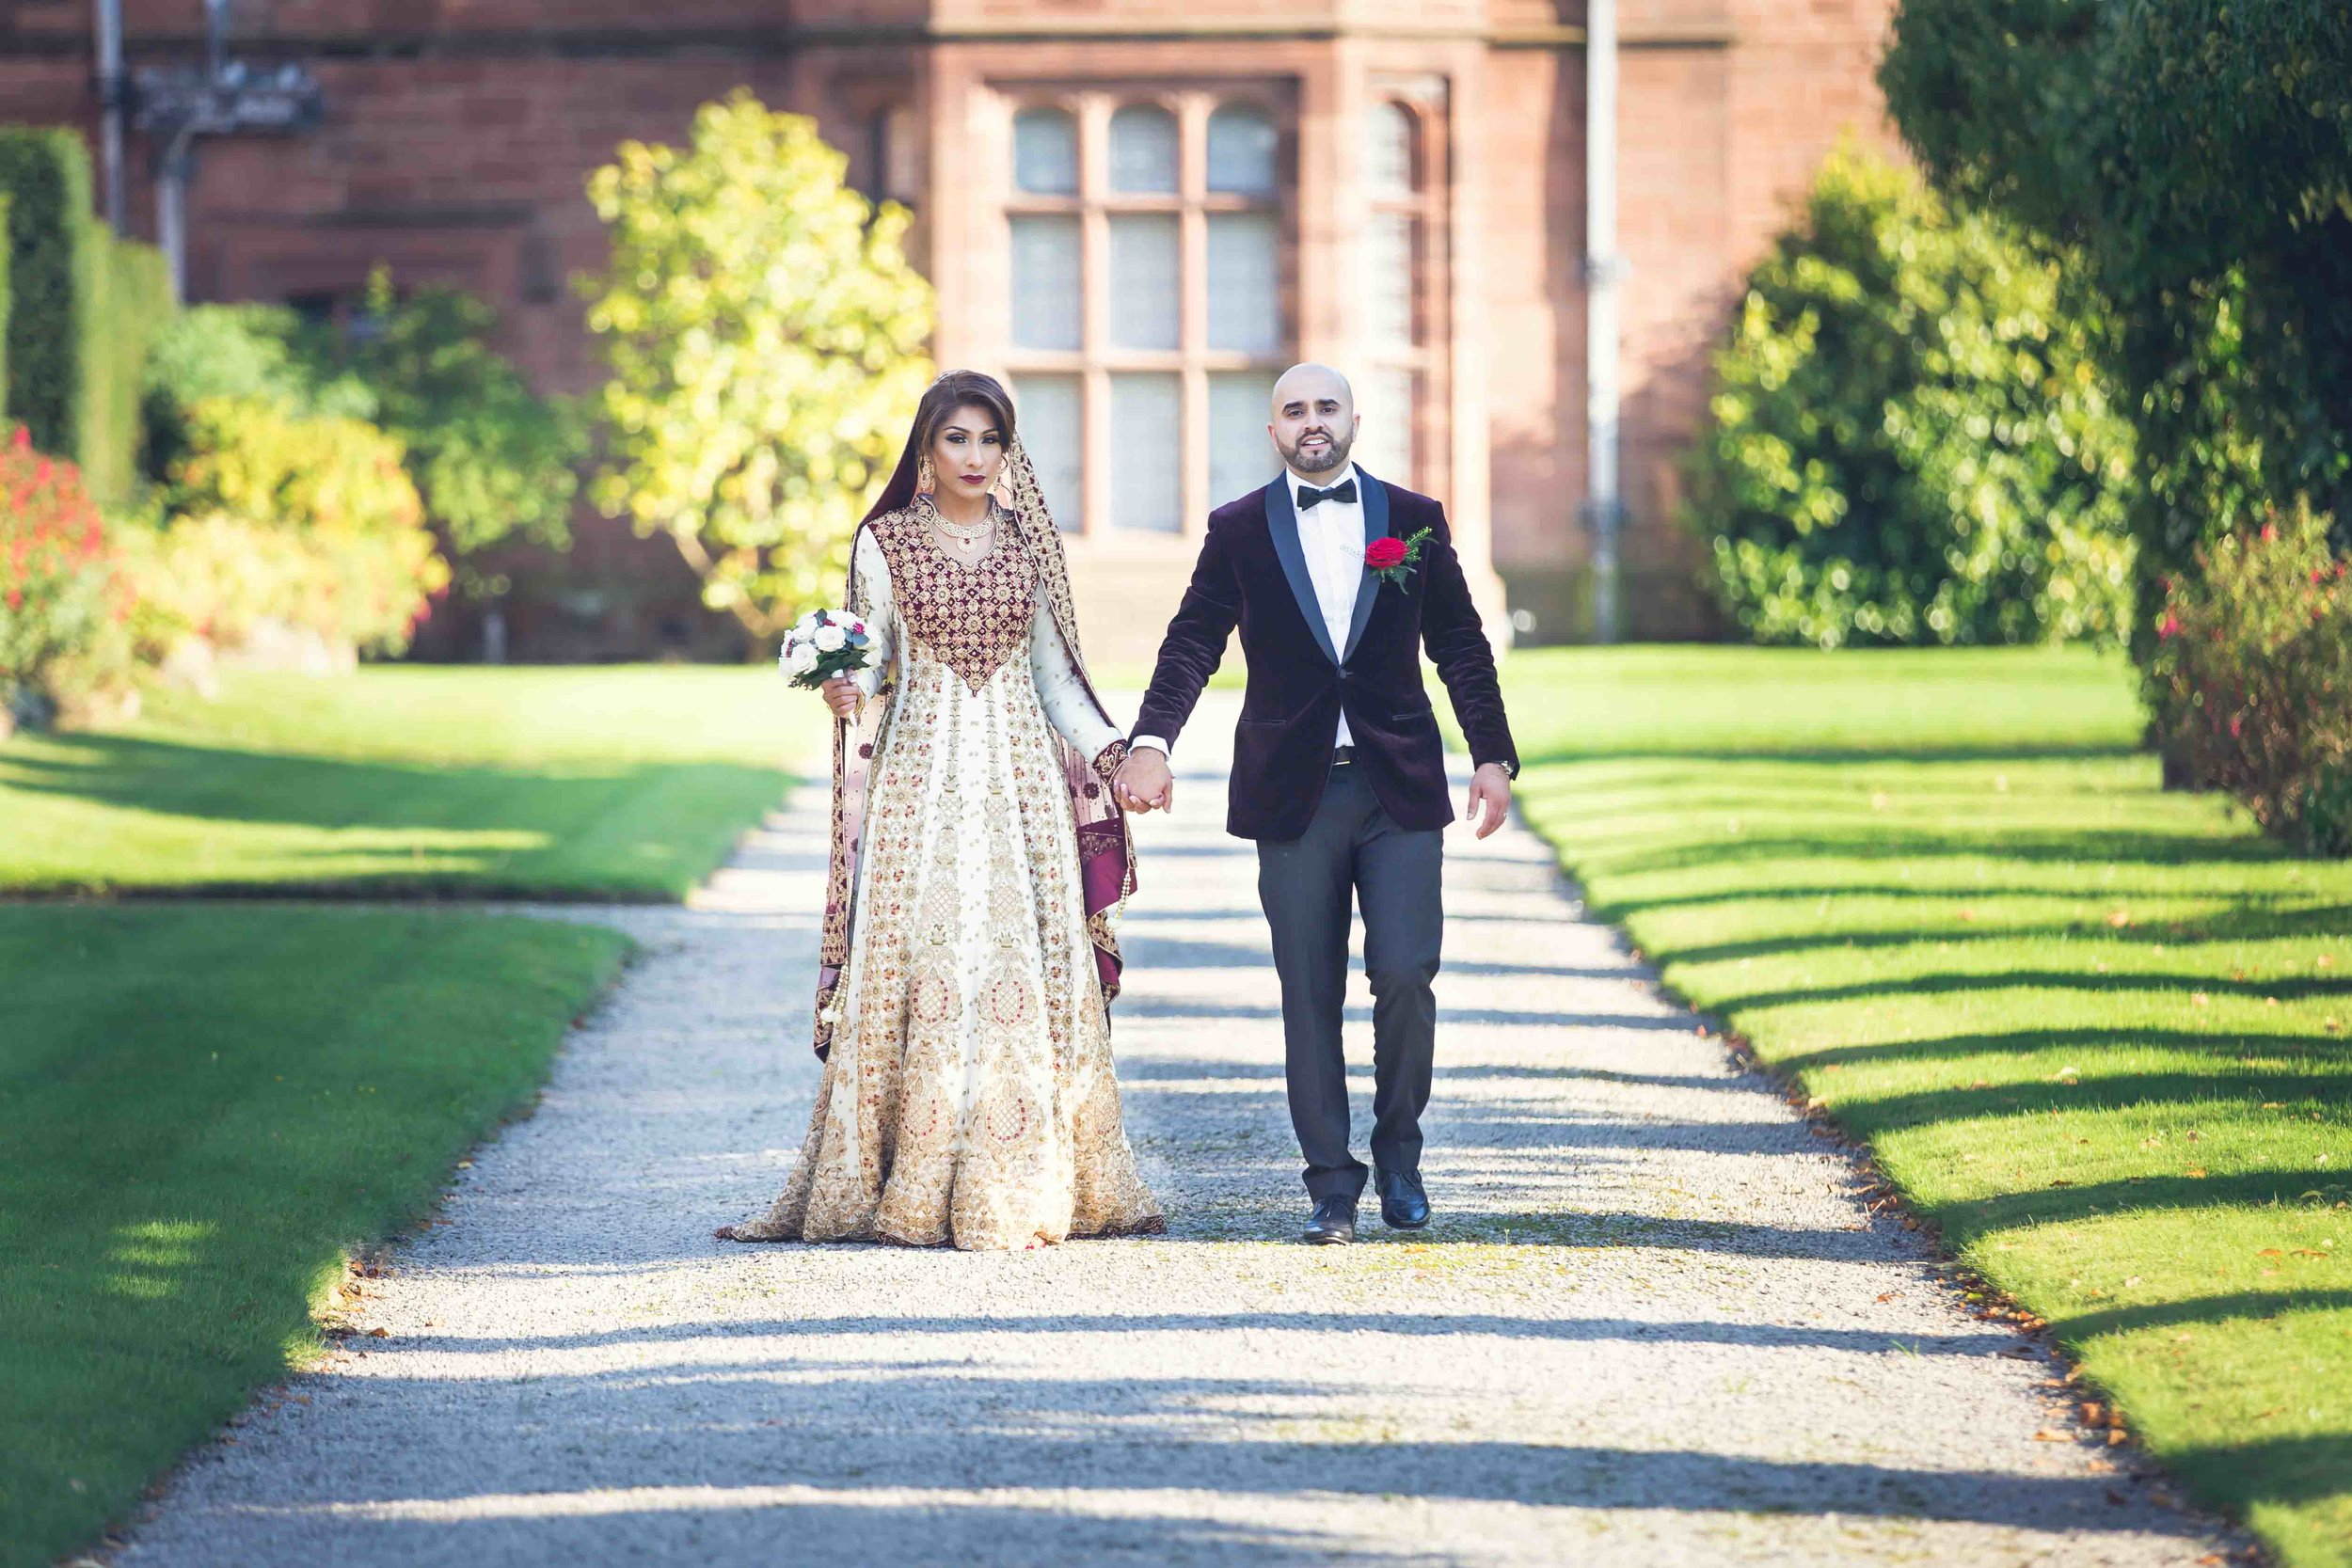 Asian Wedding Photographer Opu Sultan Photography Lyme Park Scotland Edinburgh Glasgow London Manchester Liverpool Birmingham Wedding Photos prewed shoot Azman & Saira Blog-86.jpg